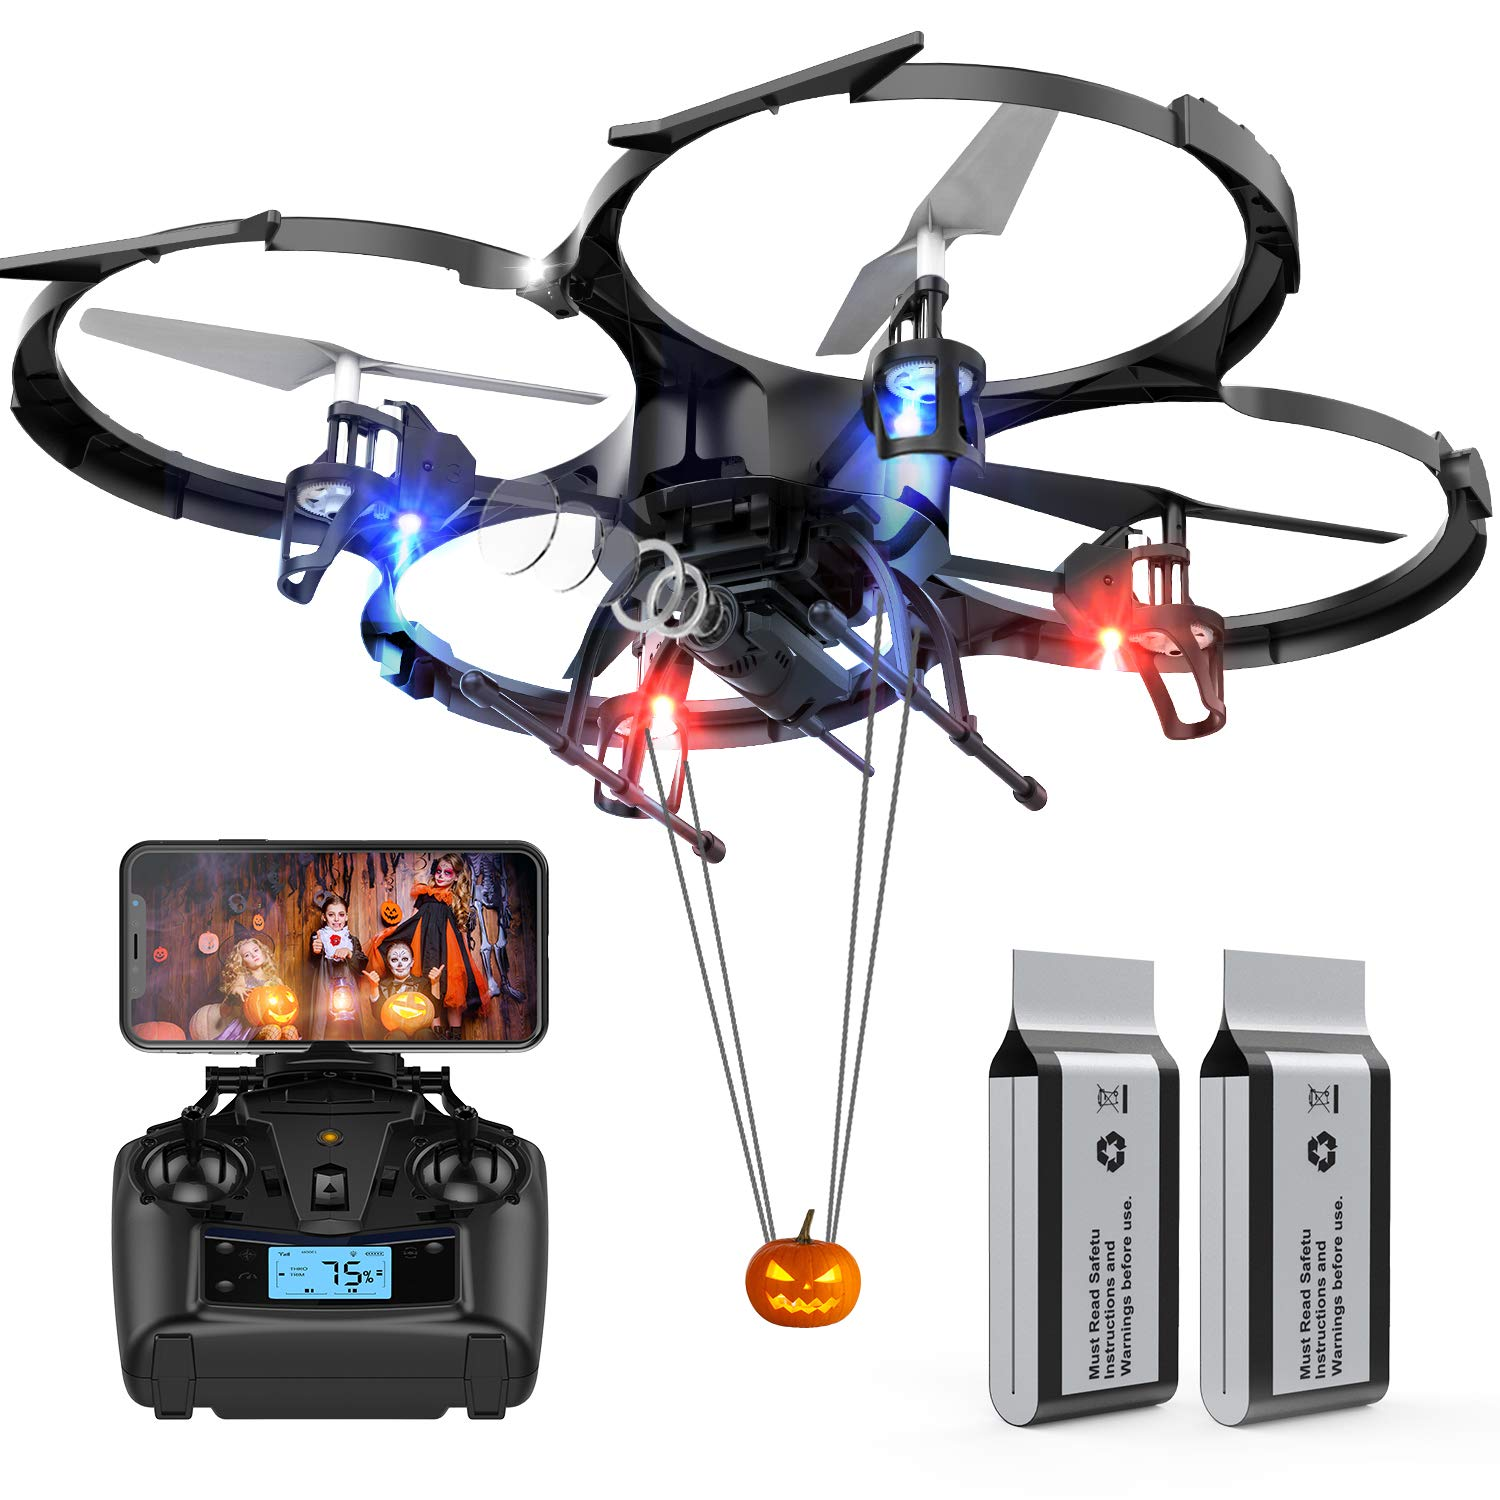 Drones with Camera-DBPOWER U818A Discovery FPV 720P HD WiFi Camera Drone,RC Quadcopters UAV for Beginners & Kids/Adults with 2 Batteries,Altitude Hold,Headless Mode,3D Flips,One Key Take Off/Landing by DBPOWER